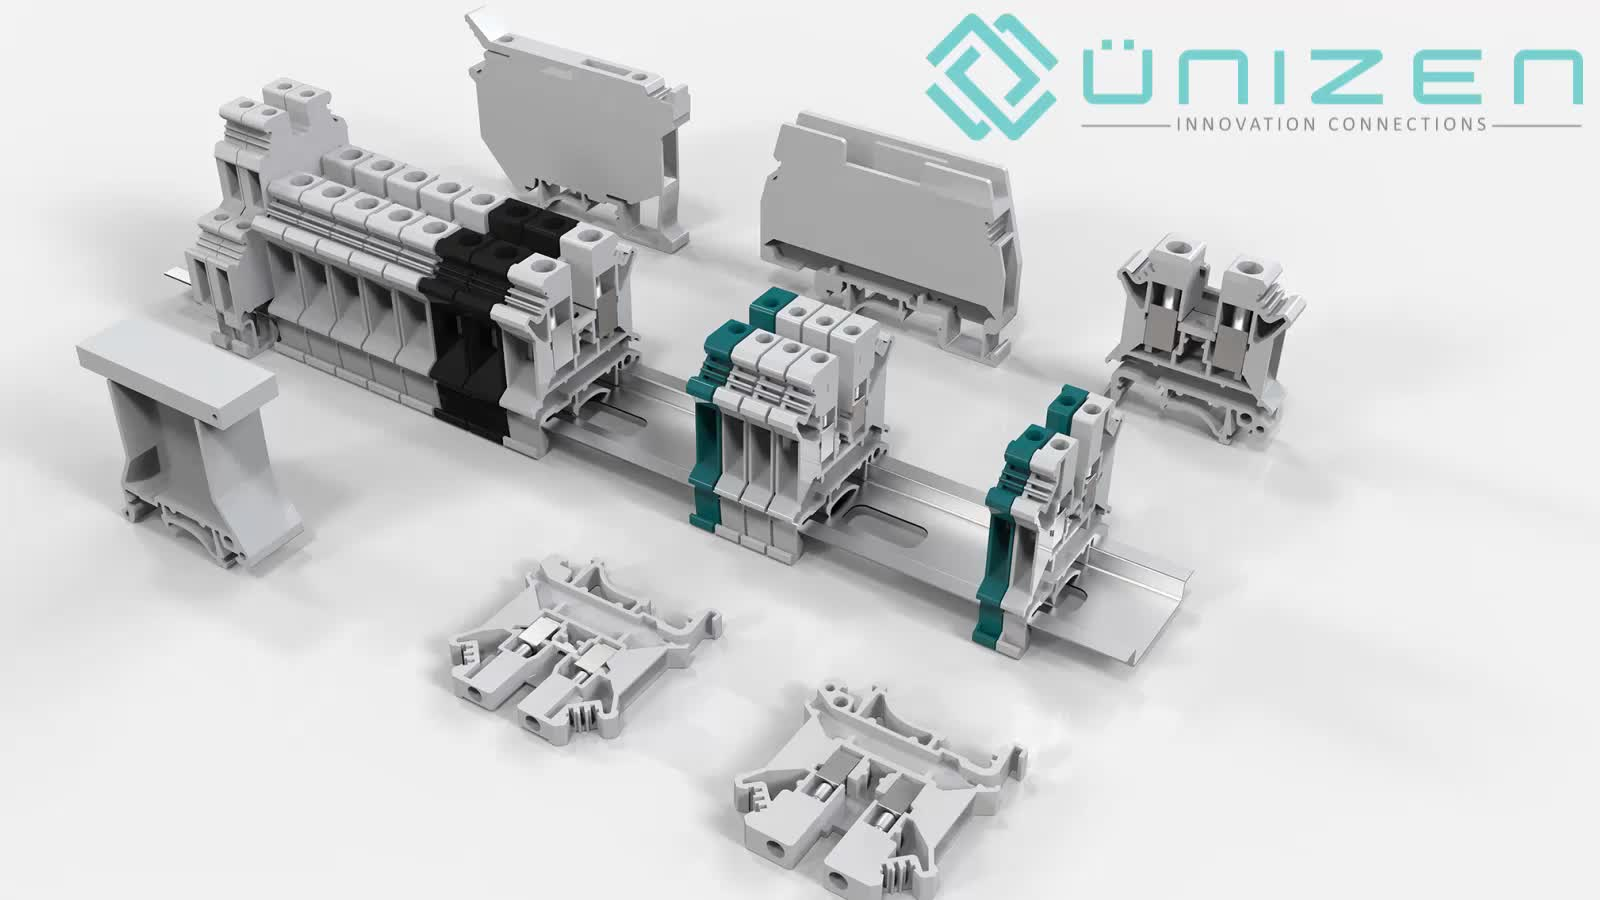 Unizen The Most Por Products Insulated Electric Connectors And Terminal on